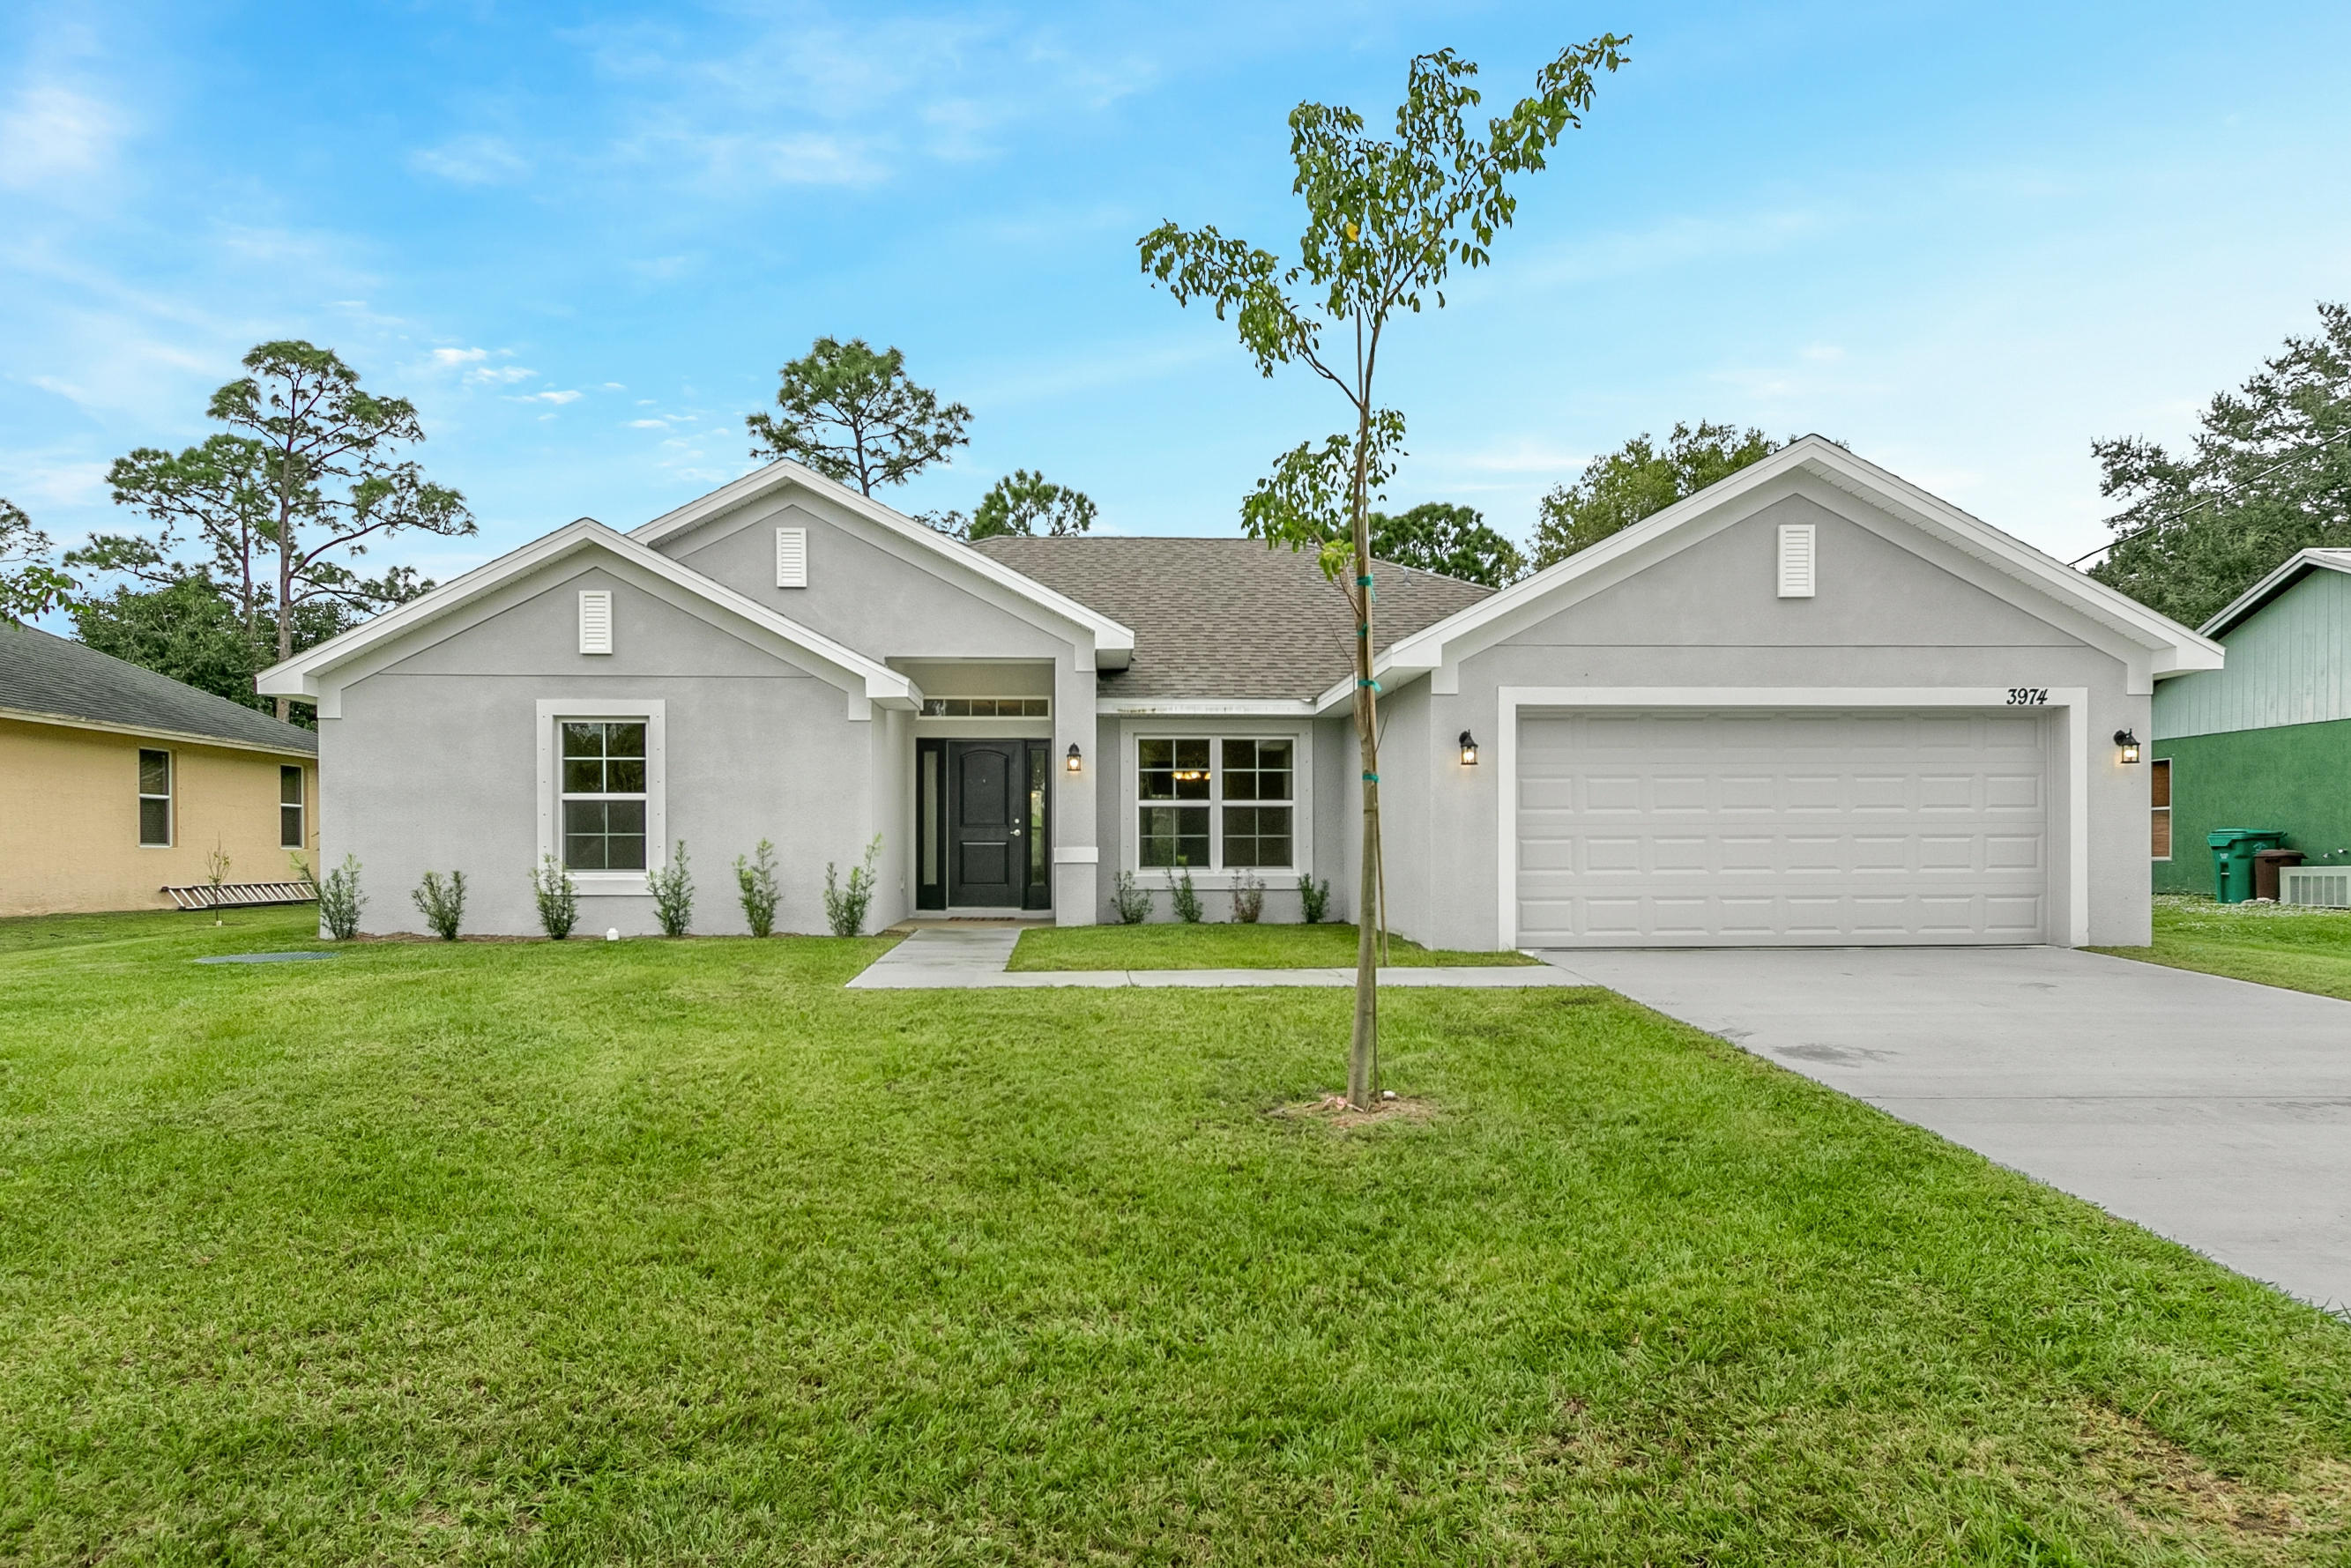 Details for 8105 Amalfi Circle, Fort Pierce, FL 34951